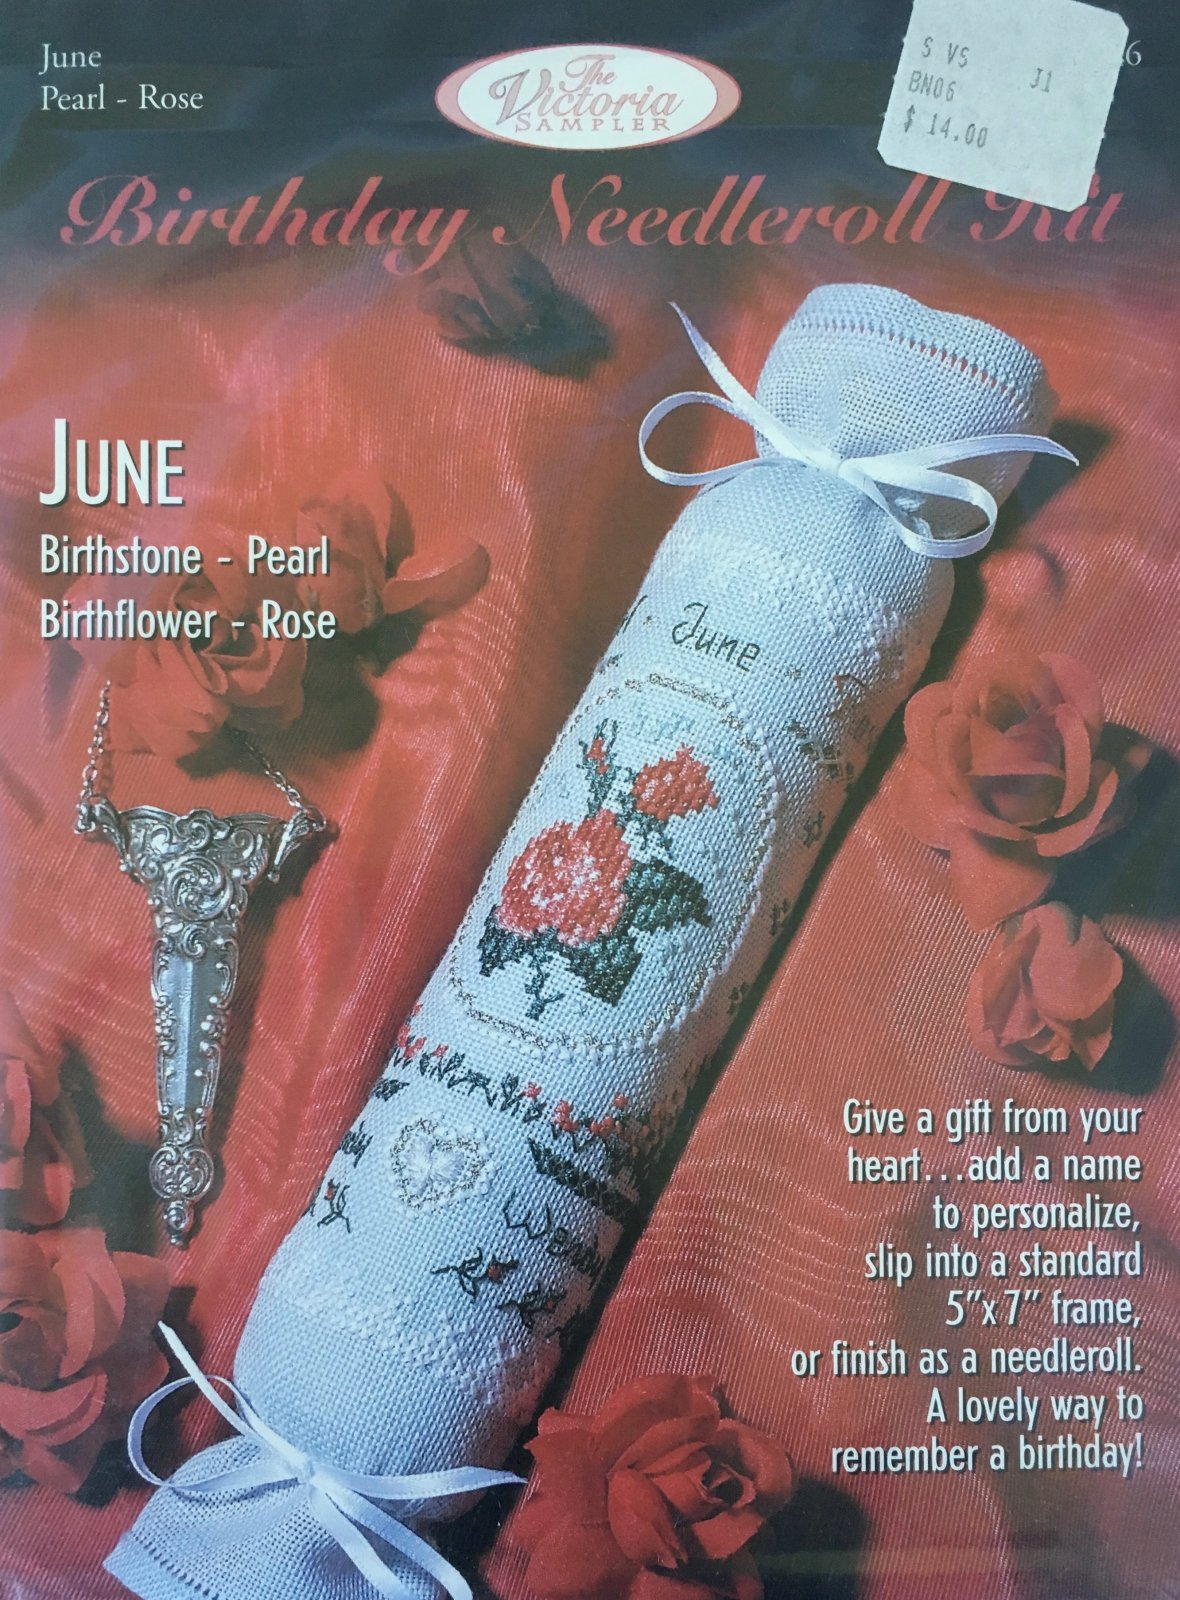 The Victoria Sampler: Birthday Needleroll Kit June BN #06